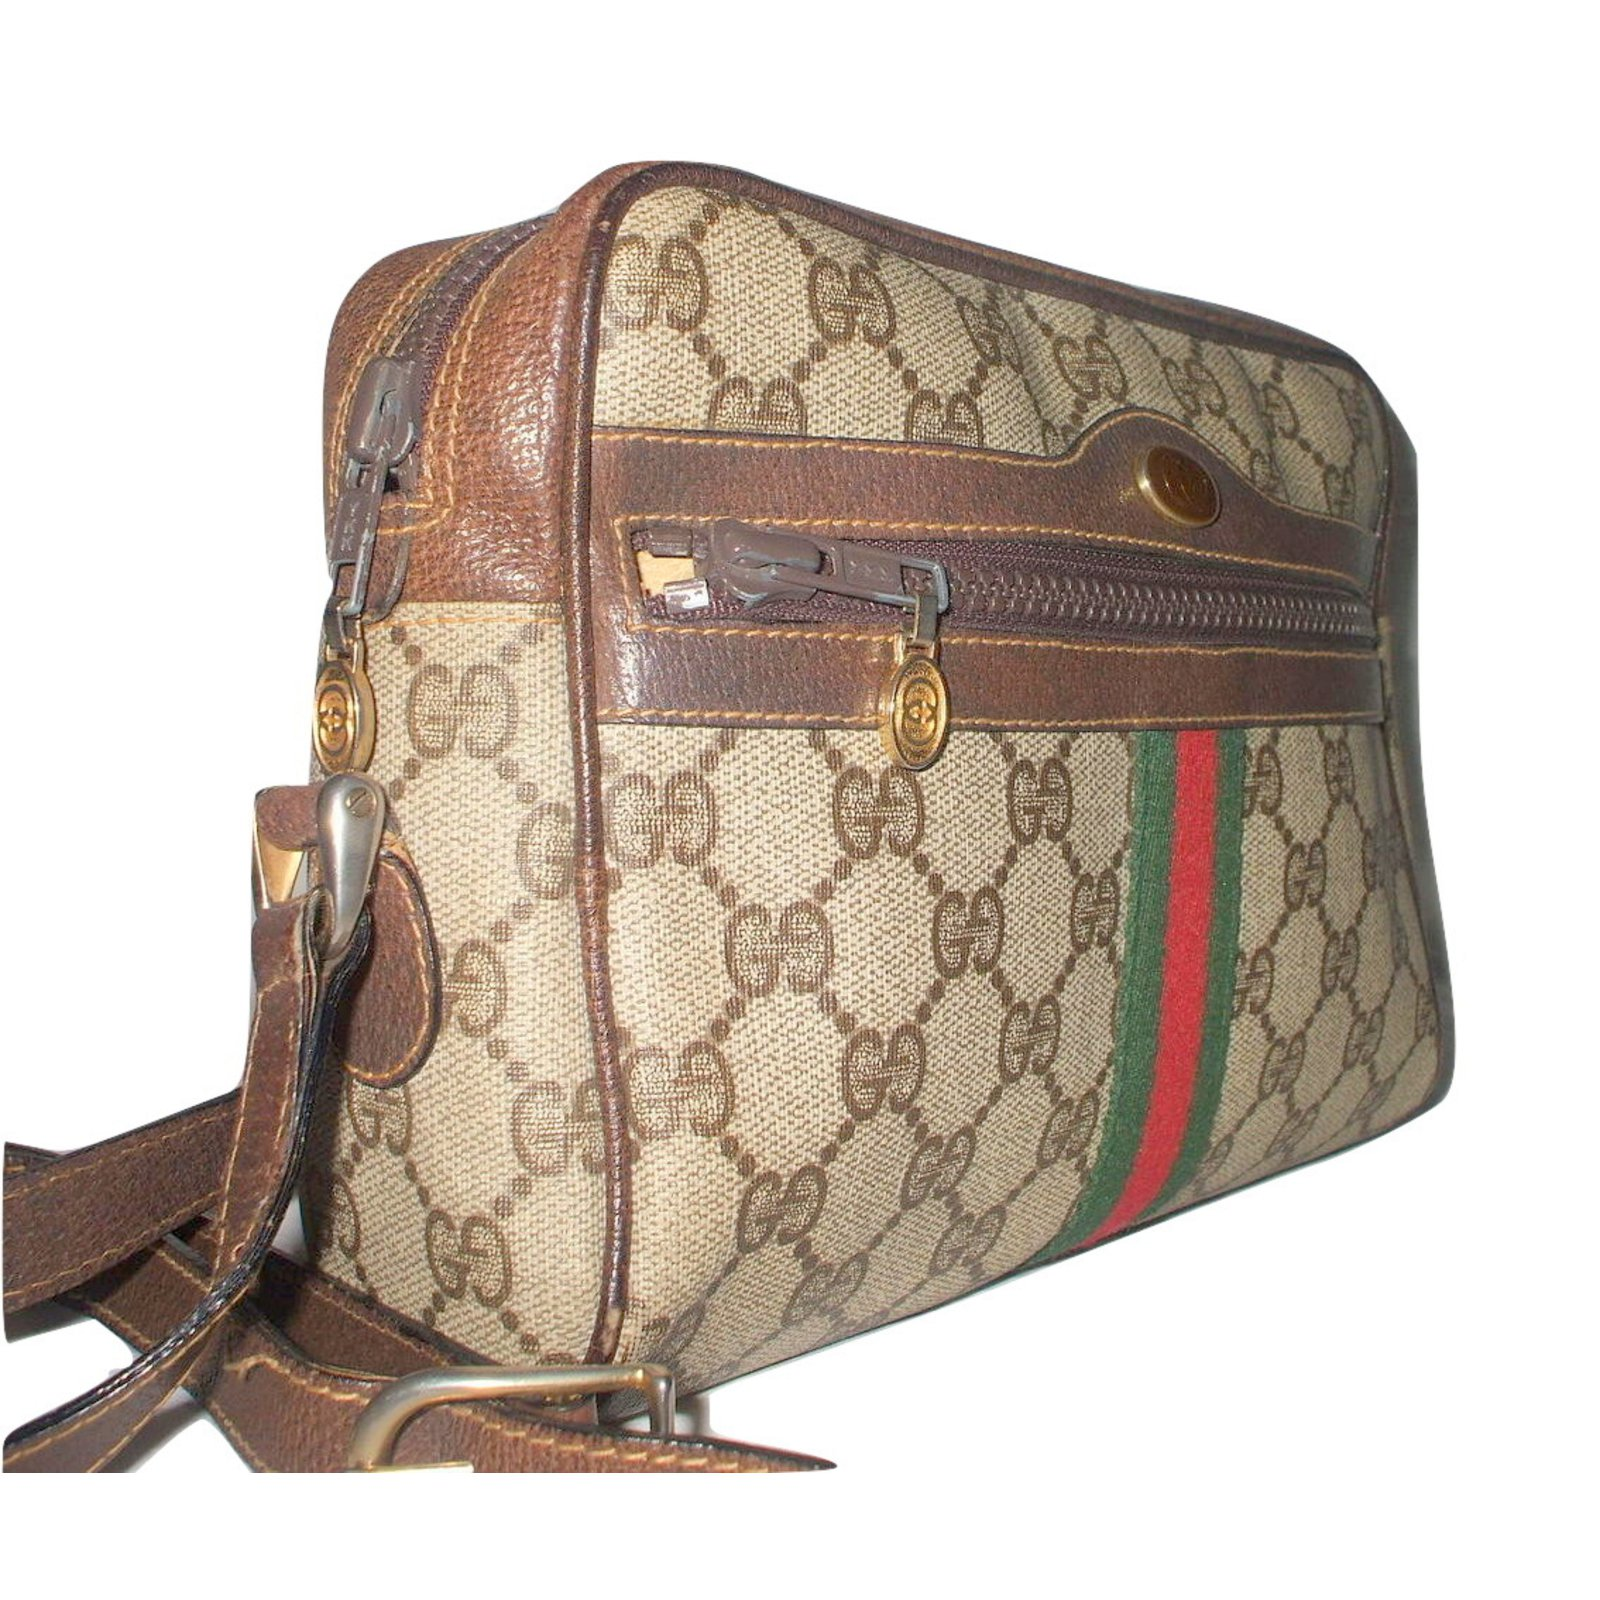 ef70e61d45cf Vintage Gucci Bags Women | Stanford Center for Opportunity Policy in ...